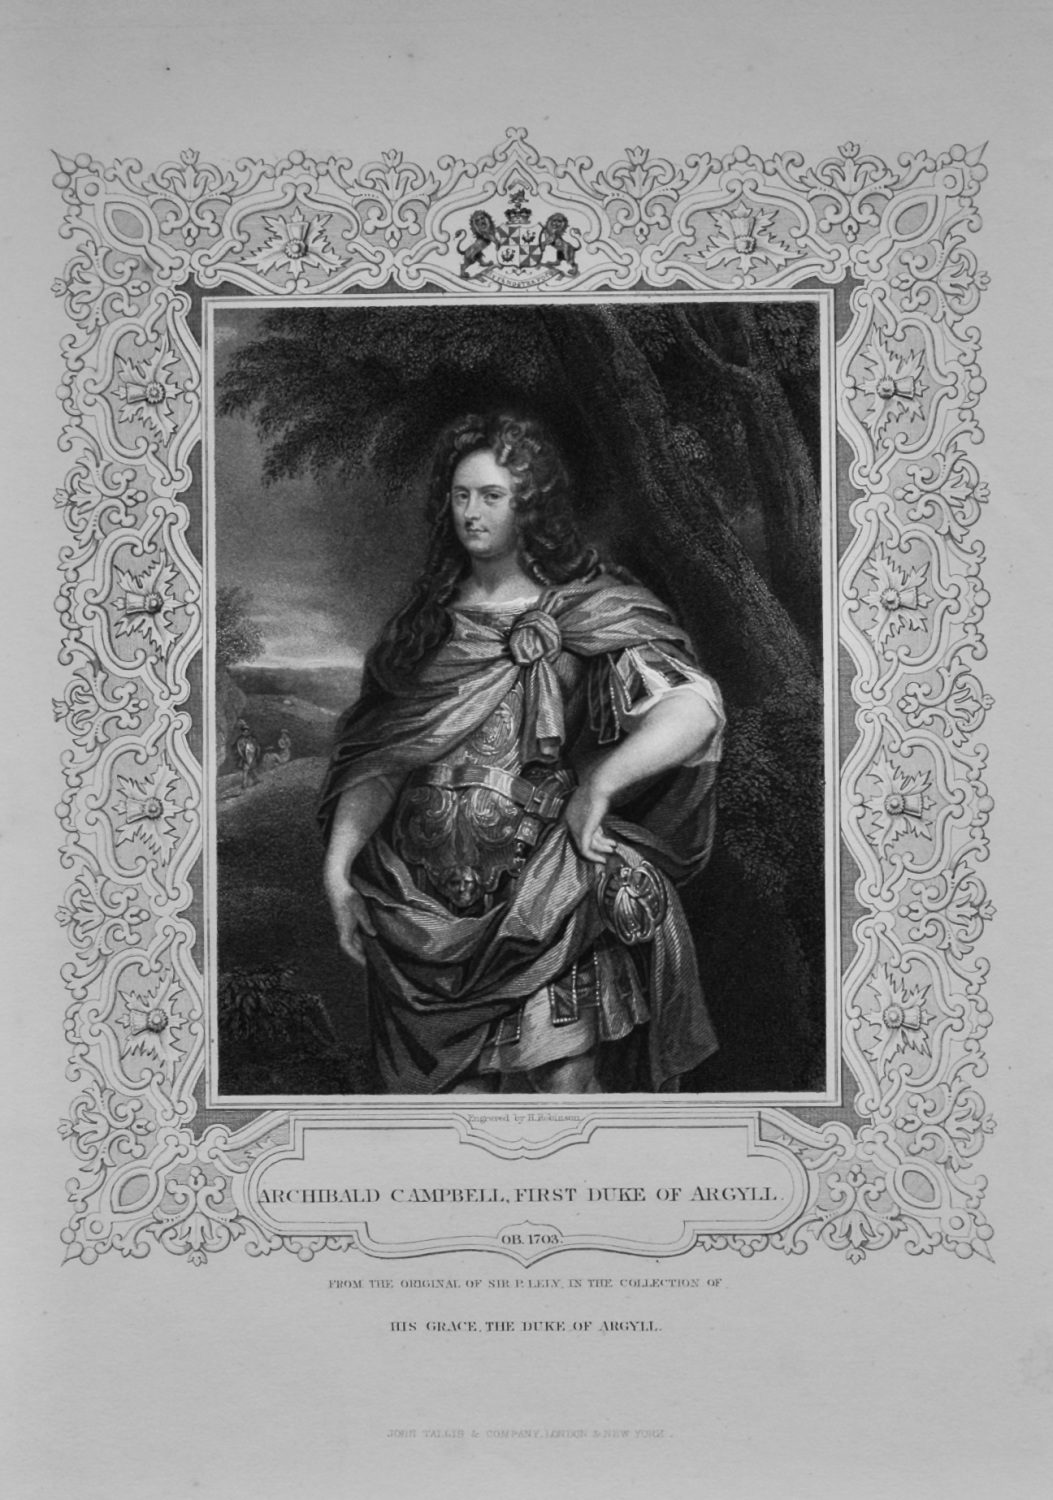 Archibald Campbell, First Duke of Argyll.